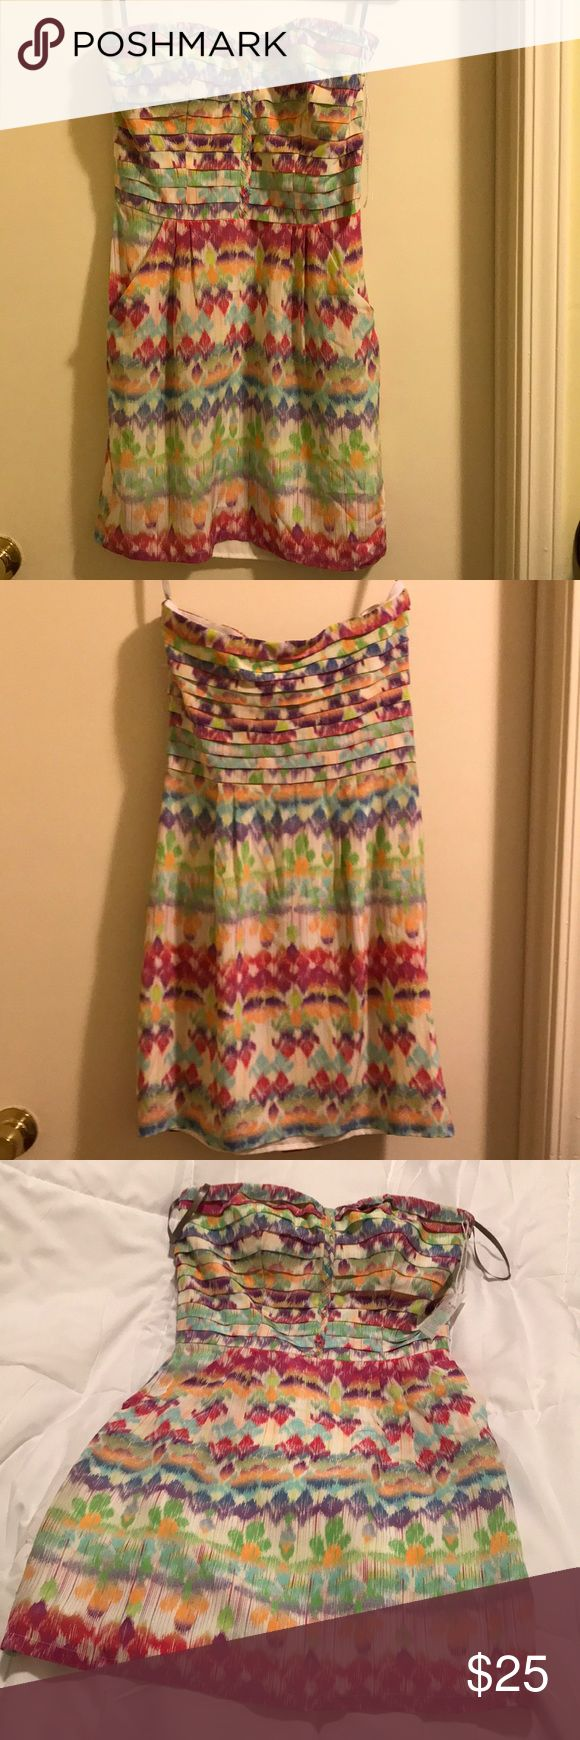 Charlie Jade multicolored Dress. Chic Charlie Jade multicolored dress. Strapless with side pockets. NWOT. Charlie Jade Dresses Strapless